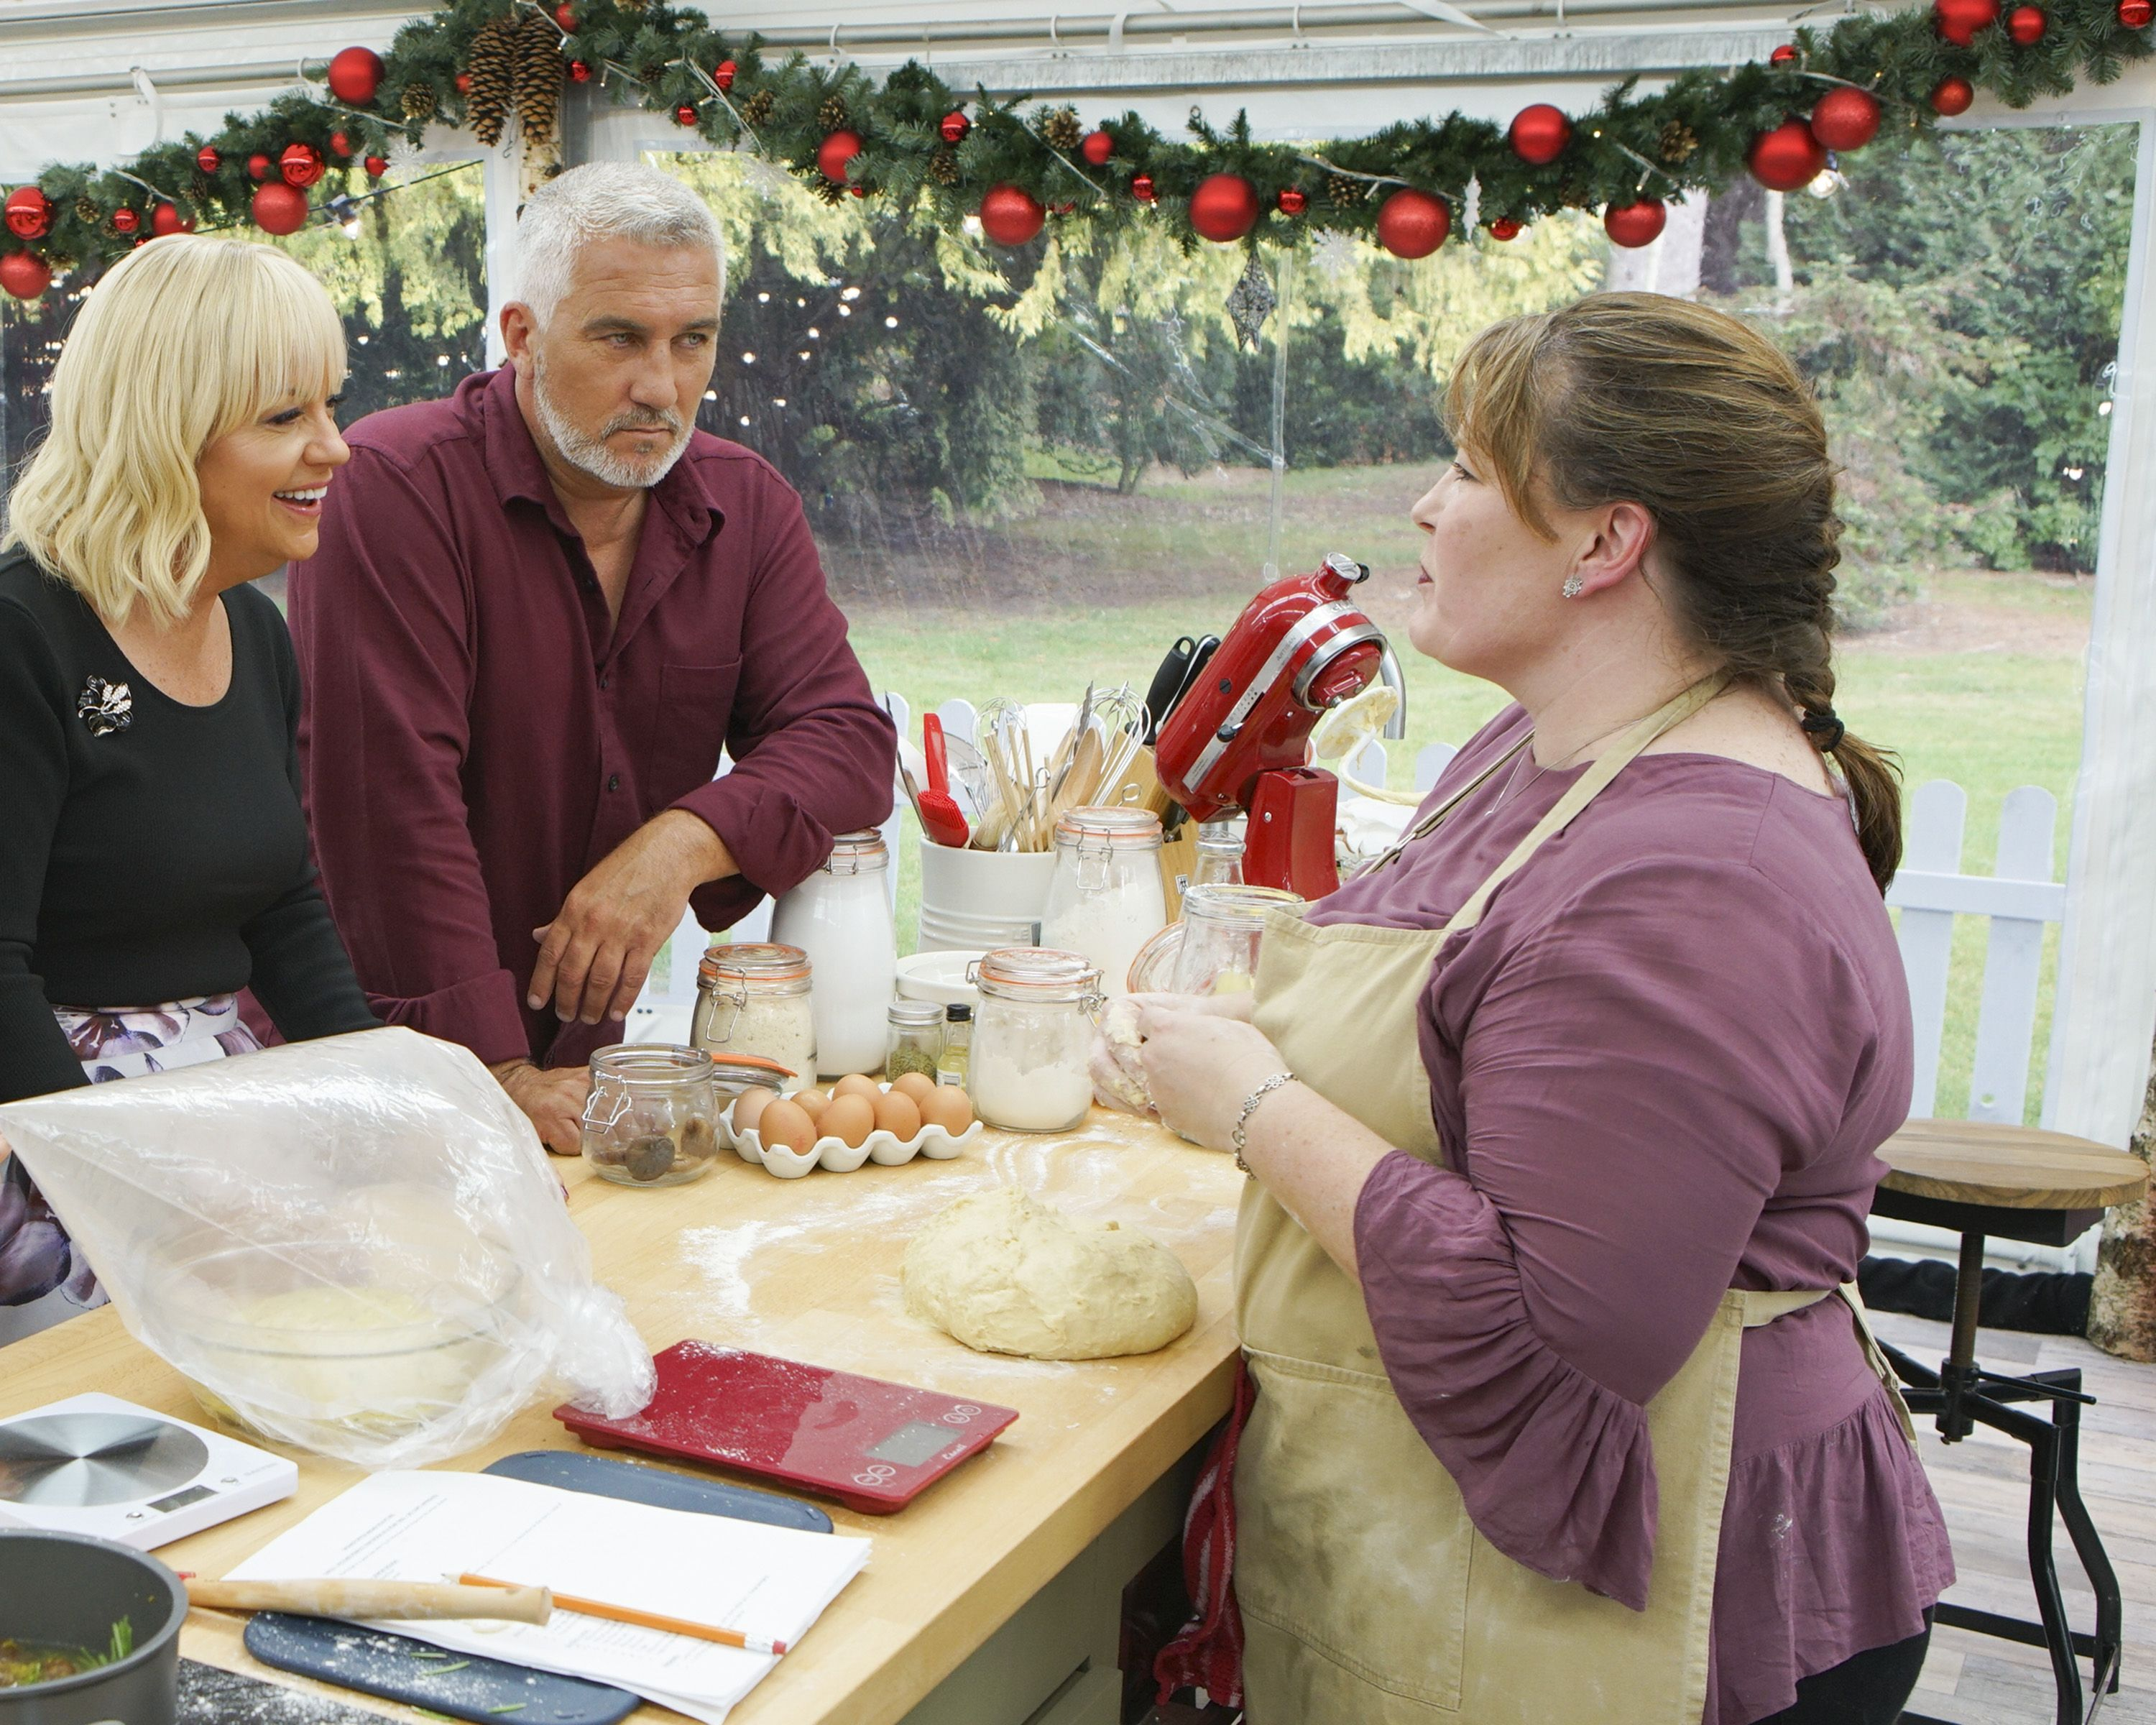 All The Baking Lessons We Learned On The Premiere Of 'The Great American Baking Show: Holiday Edition'